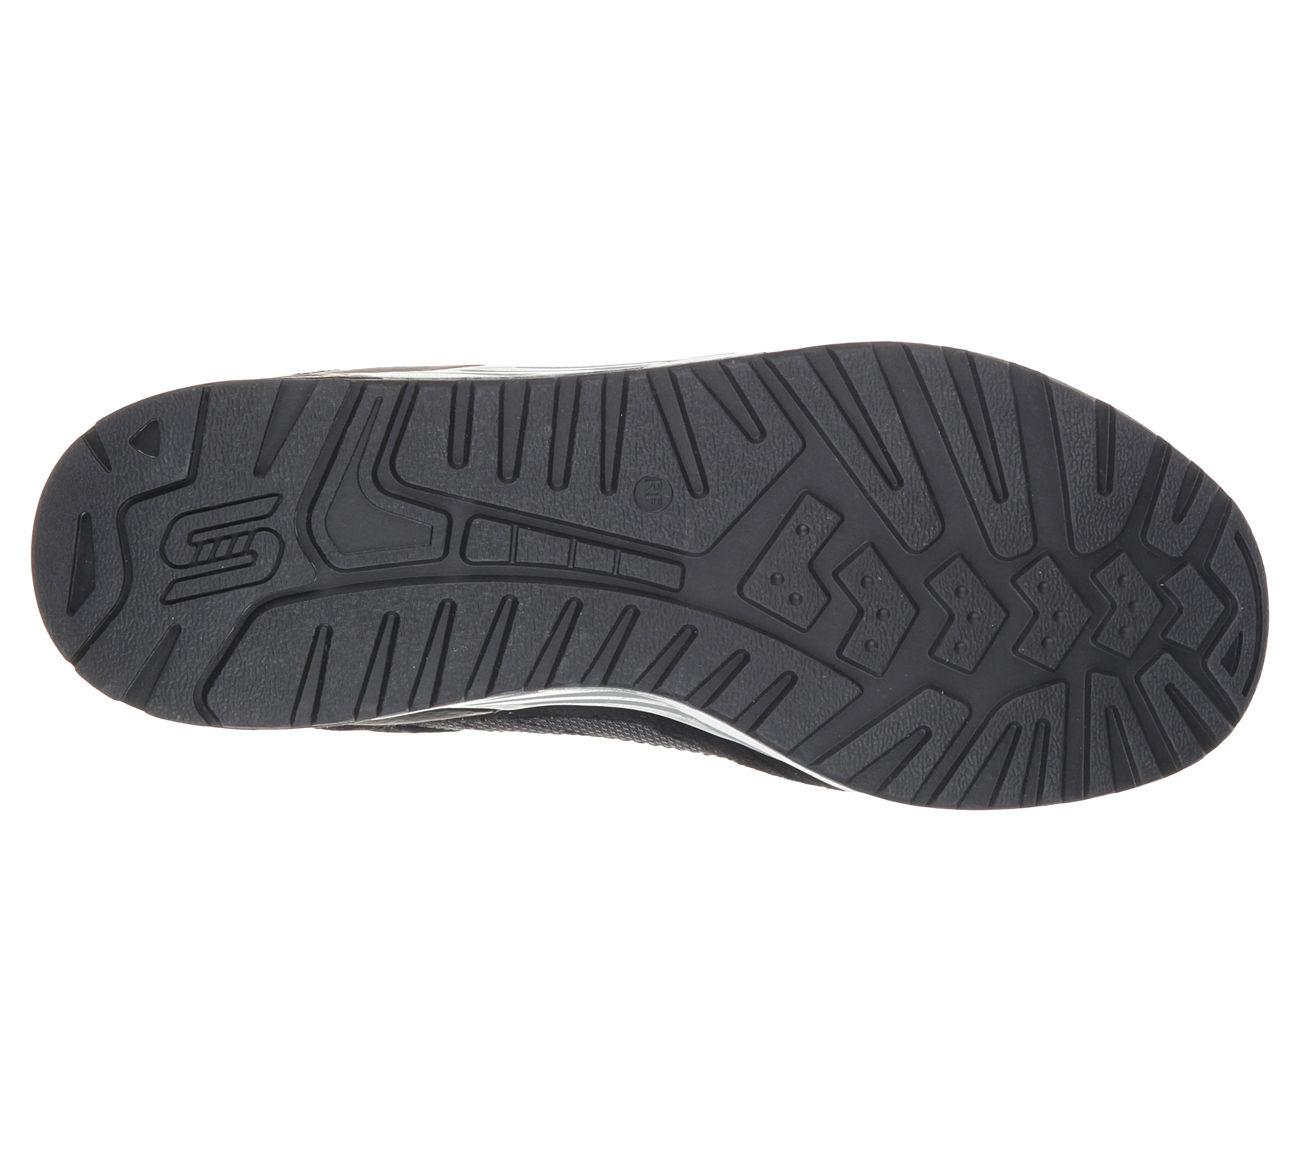 163243e0b349 SKECHERS - Skechers 611 BLK Women s OG 95 - GREAT HEIGHTS Sneaker -  Walmart.com